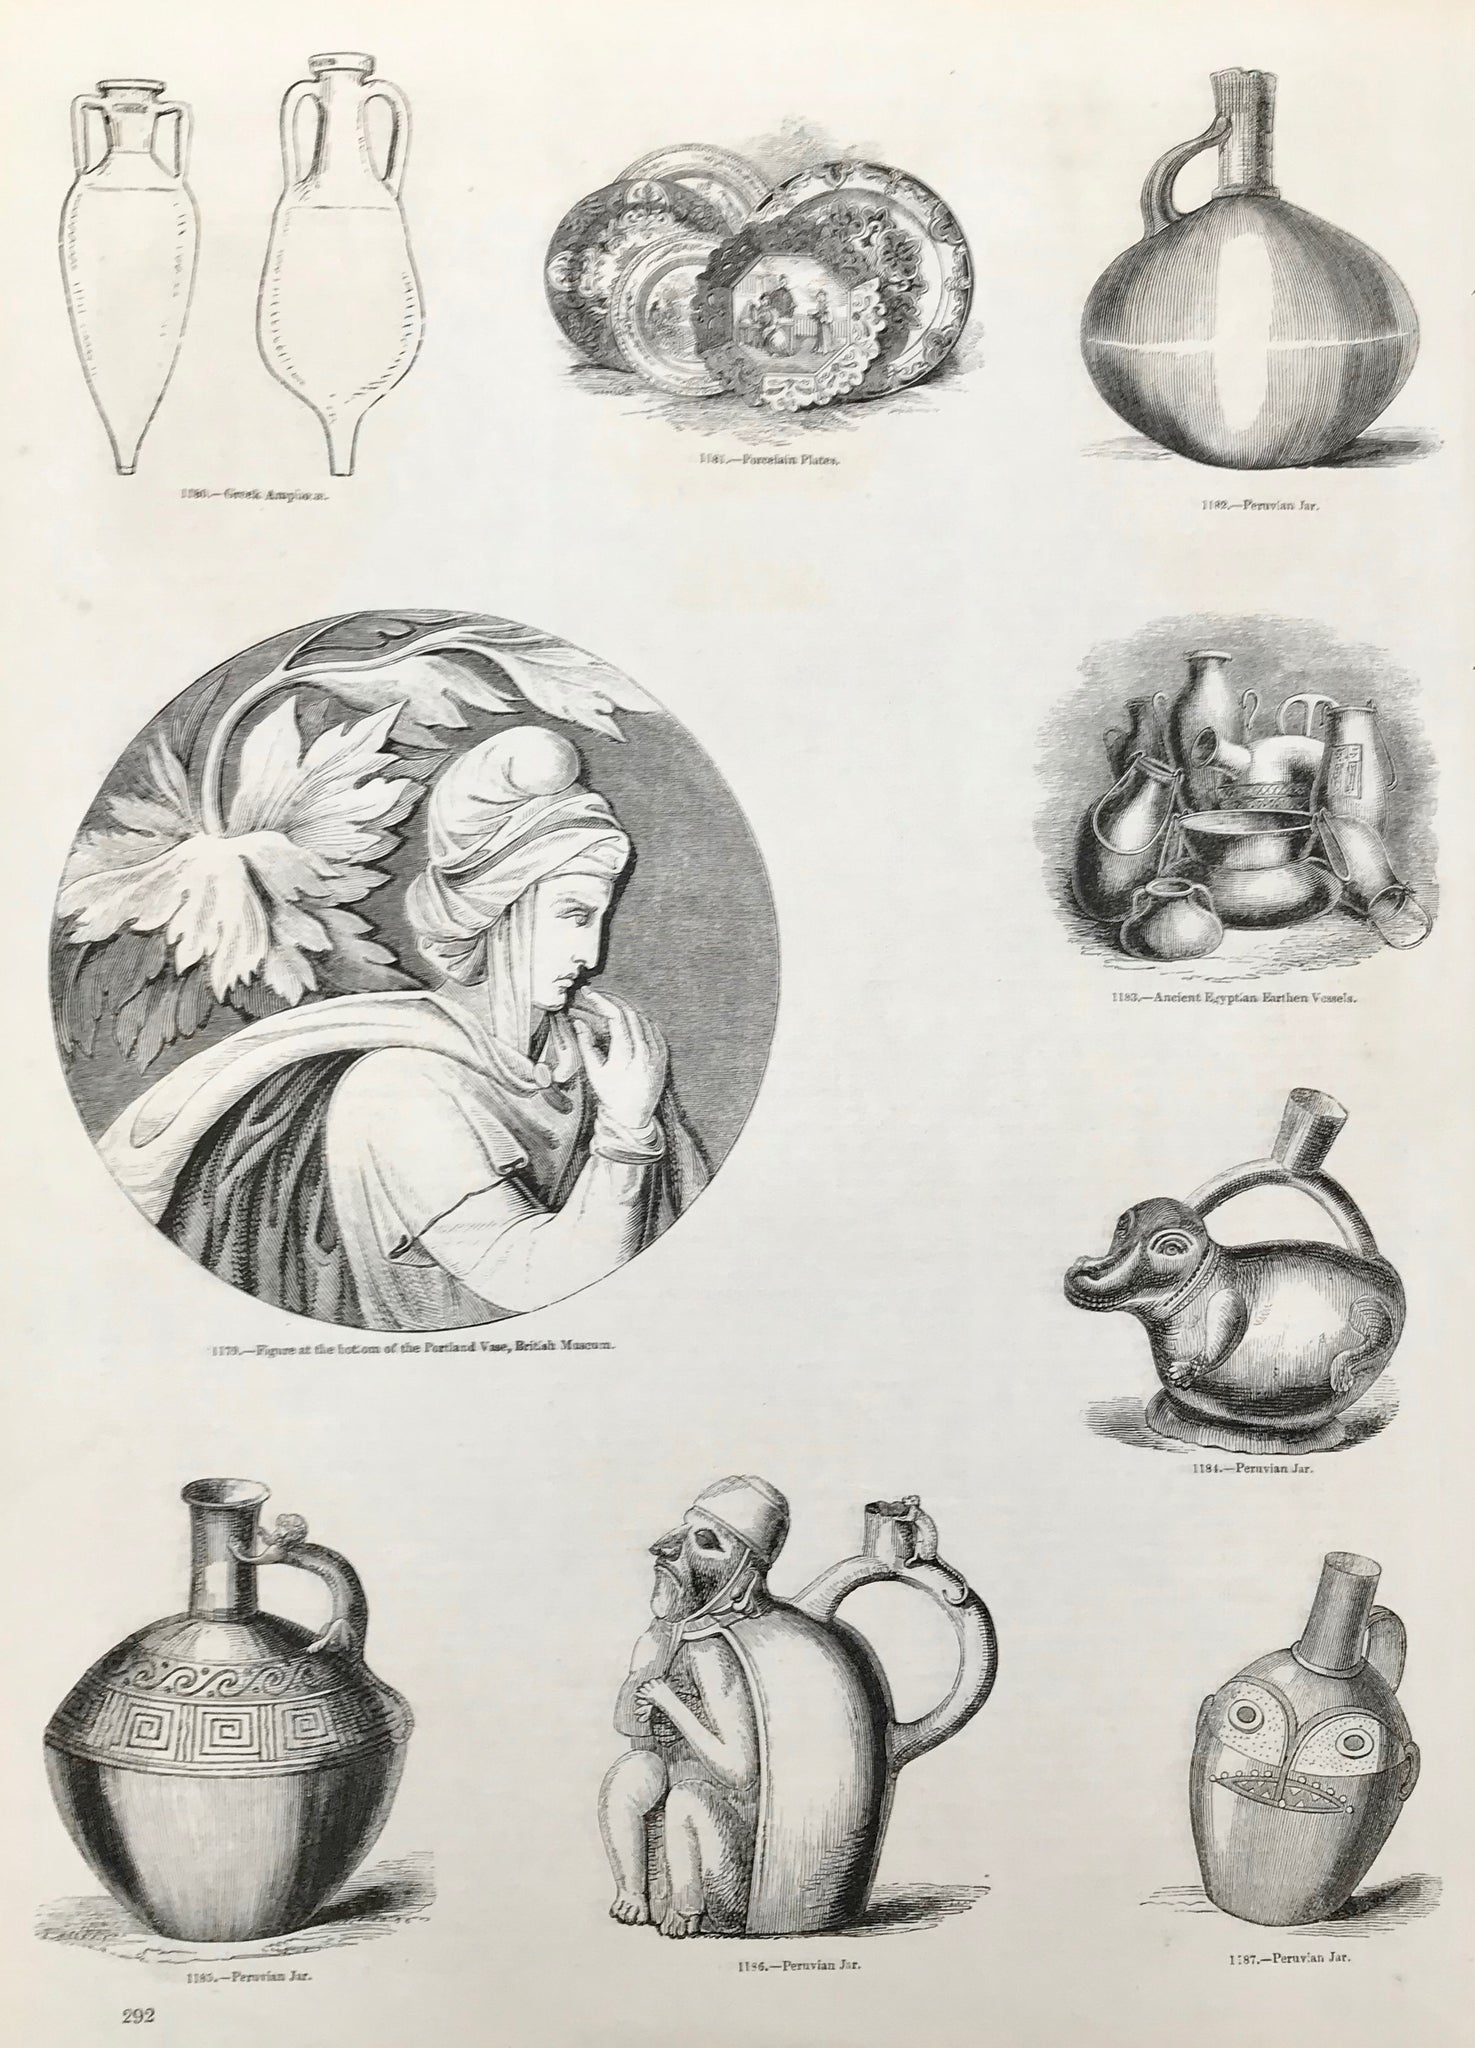 Center: Figure at the bottom of the Portland Vase, British Museum. Peruvian and Eygptian vessels.  Wood engravings ca 1875. Backside is printed. Minor spots in margins.